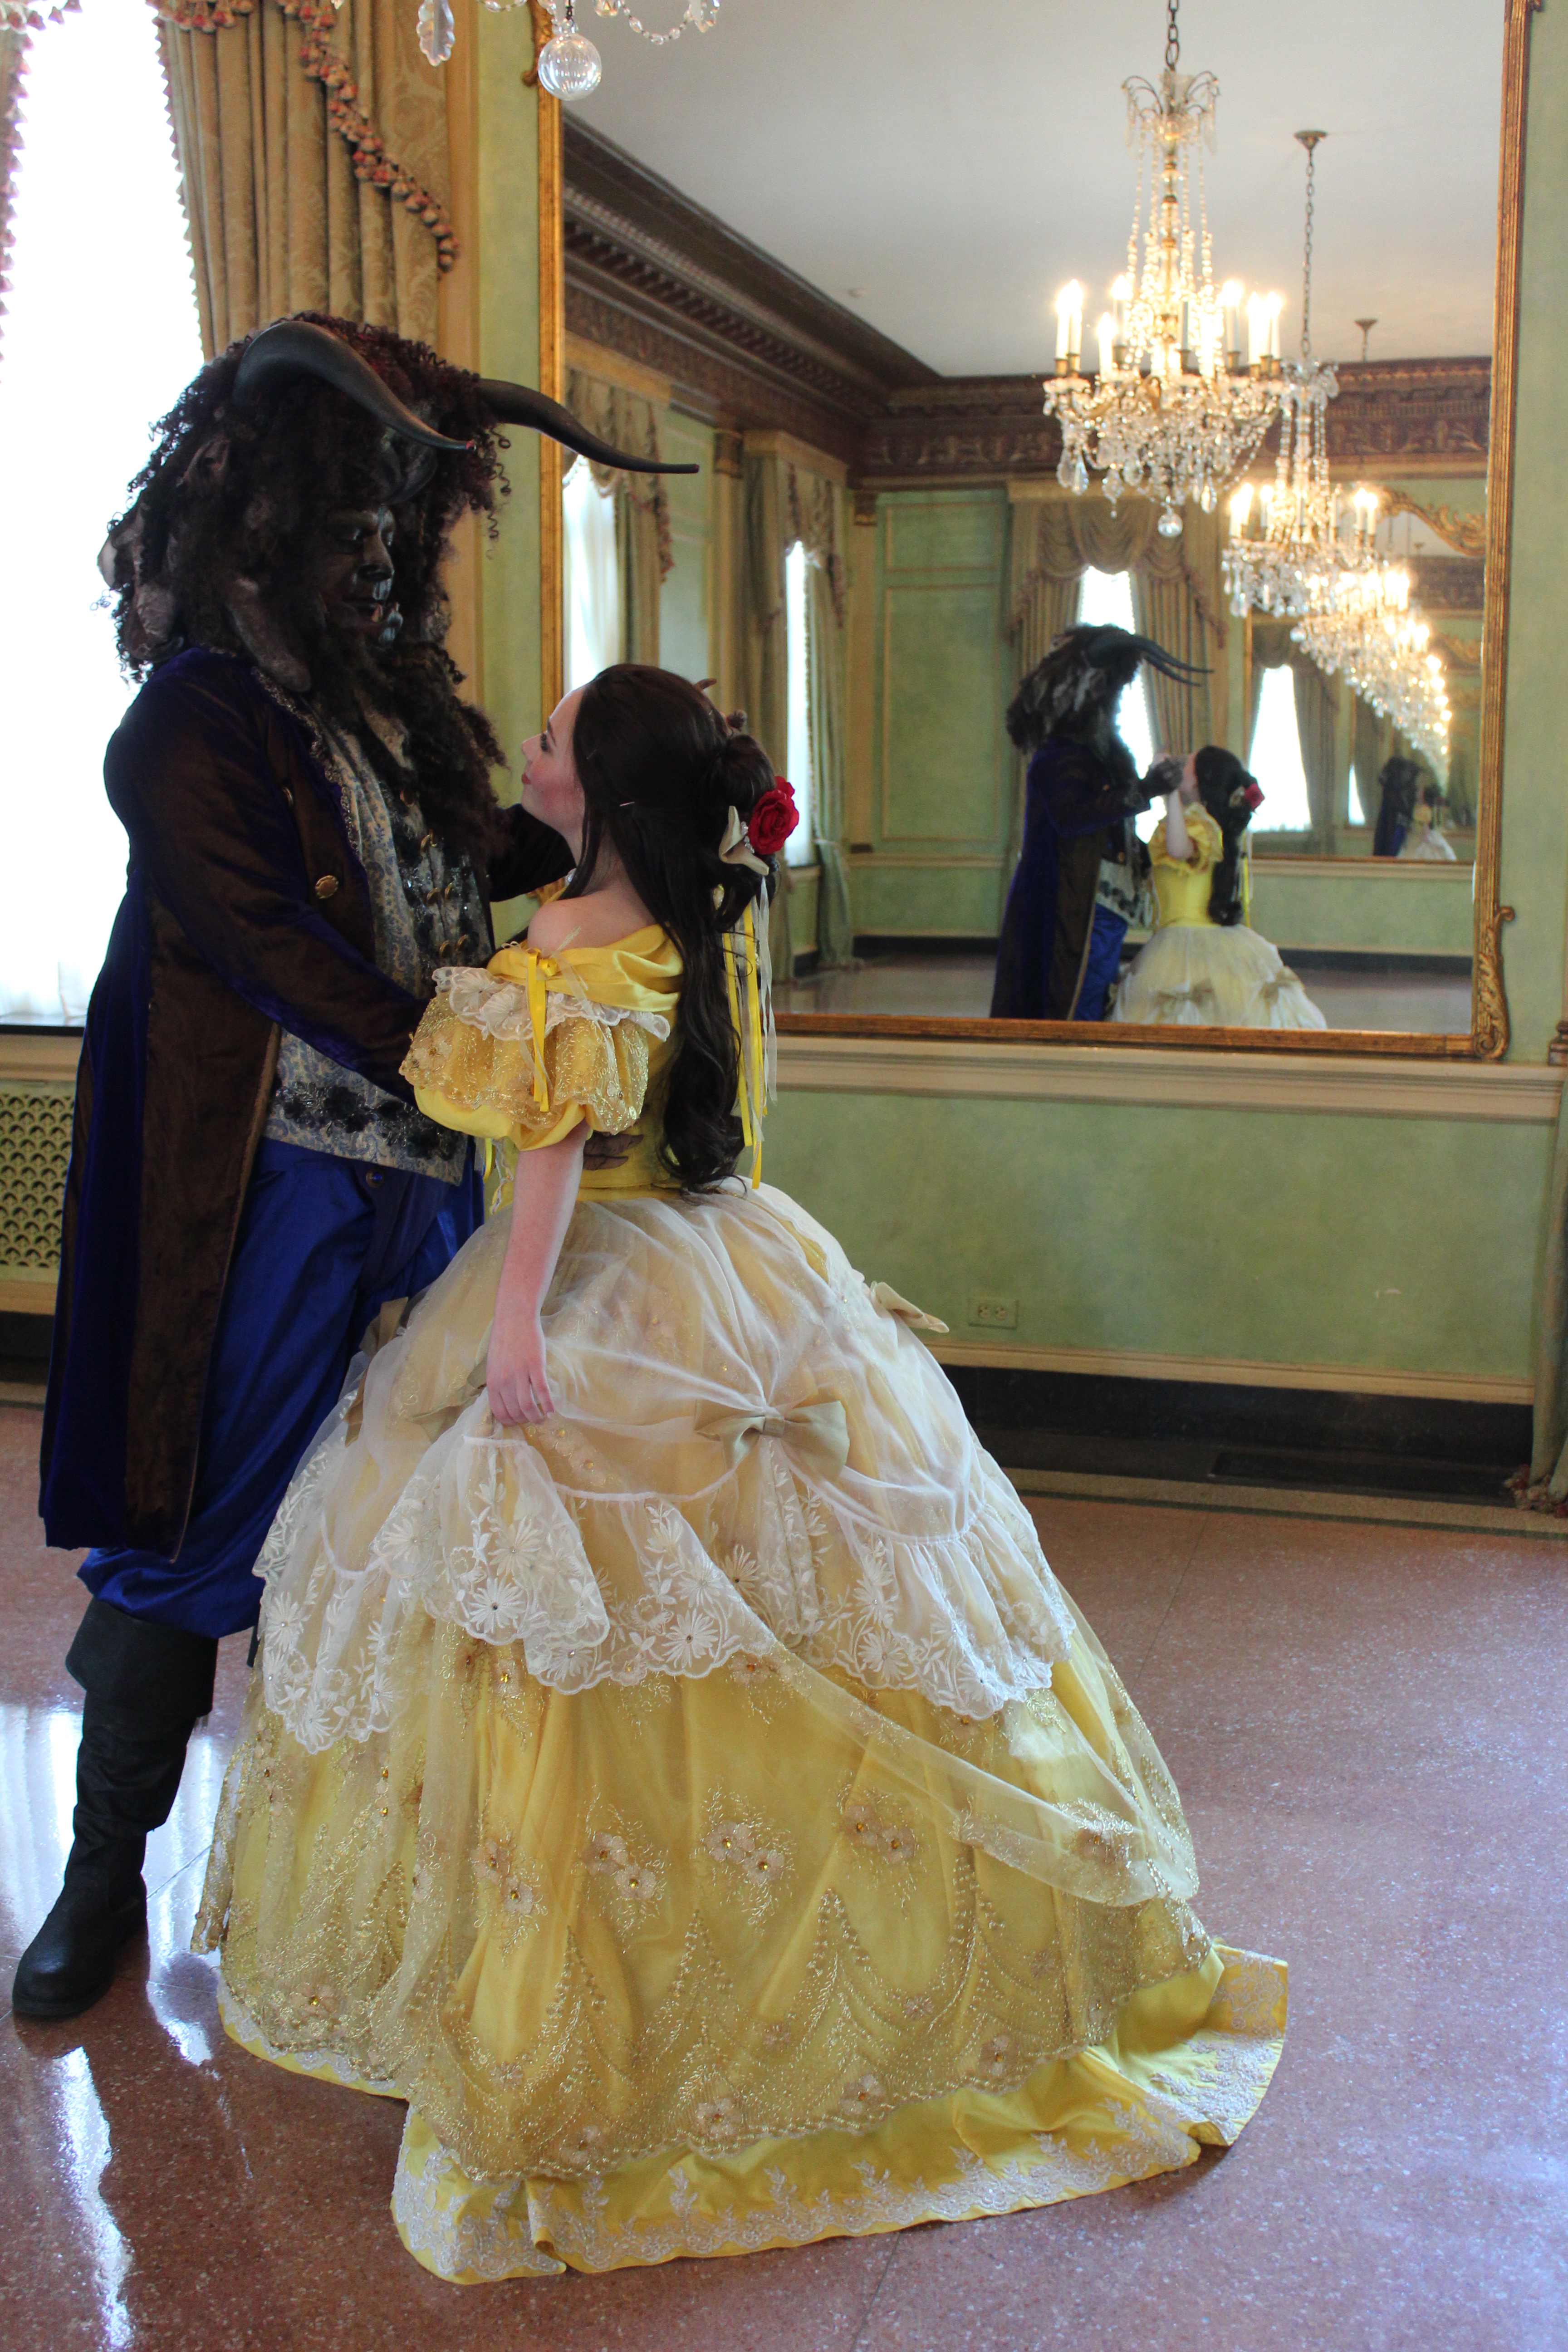 BWW Review: BEAUTY AND THE BEAST at Theatre Baton Rouge